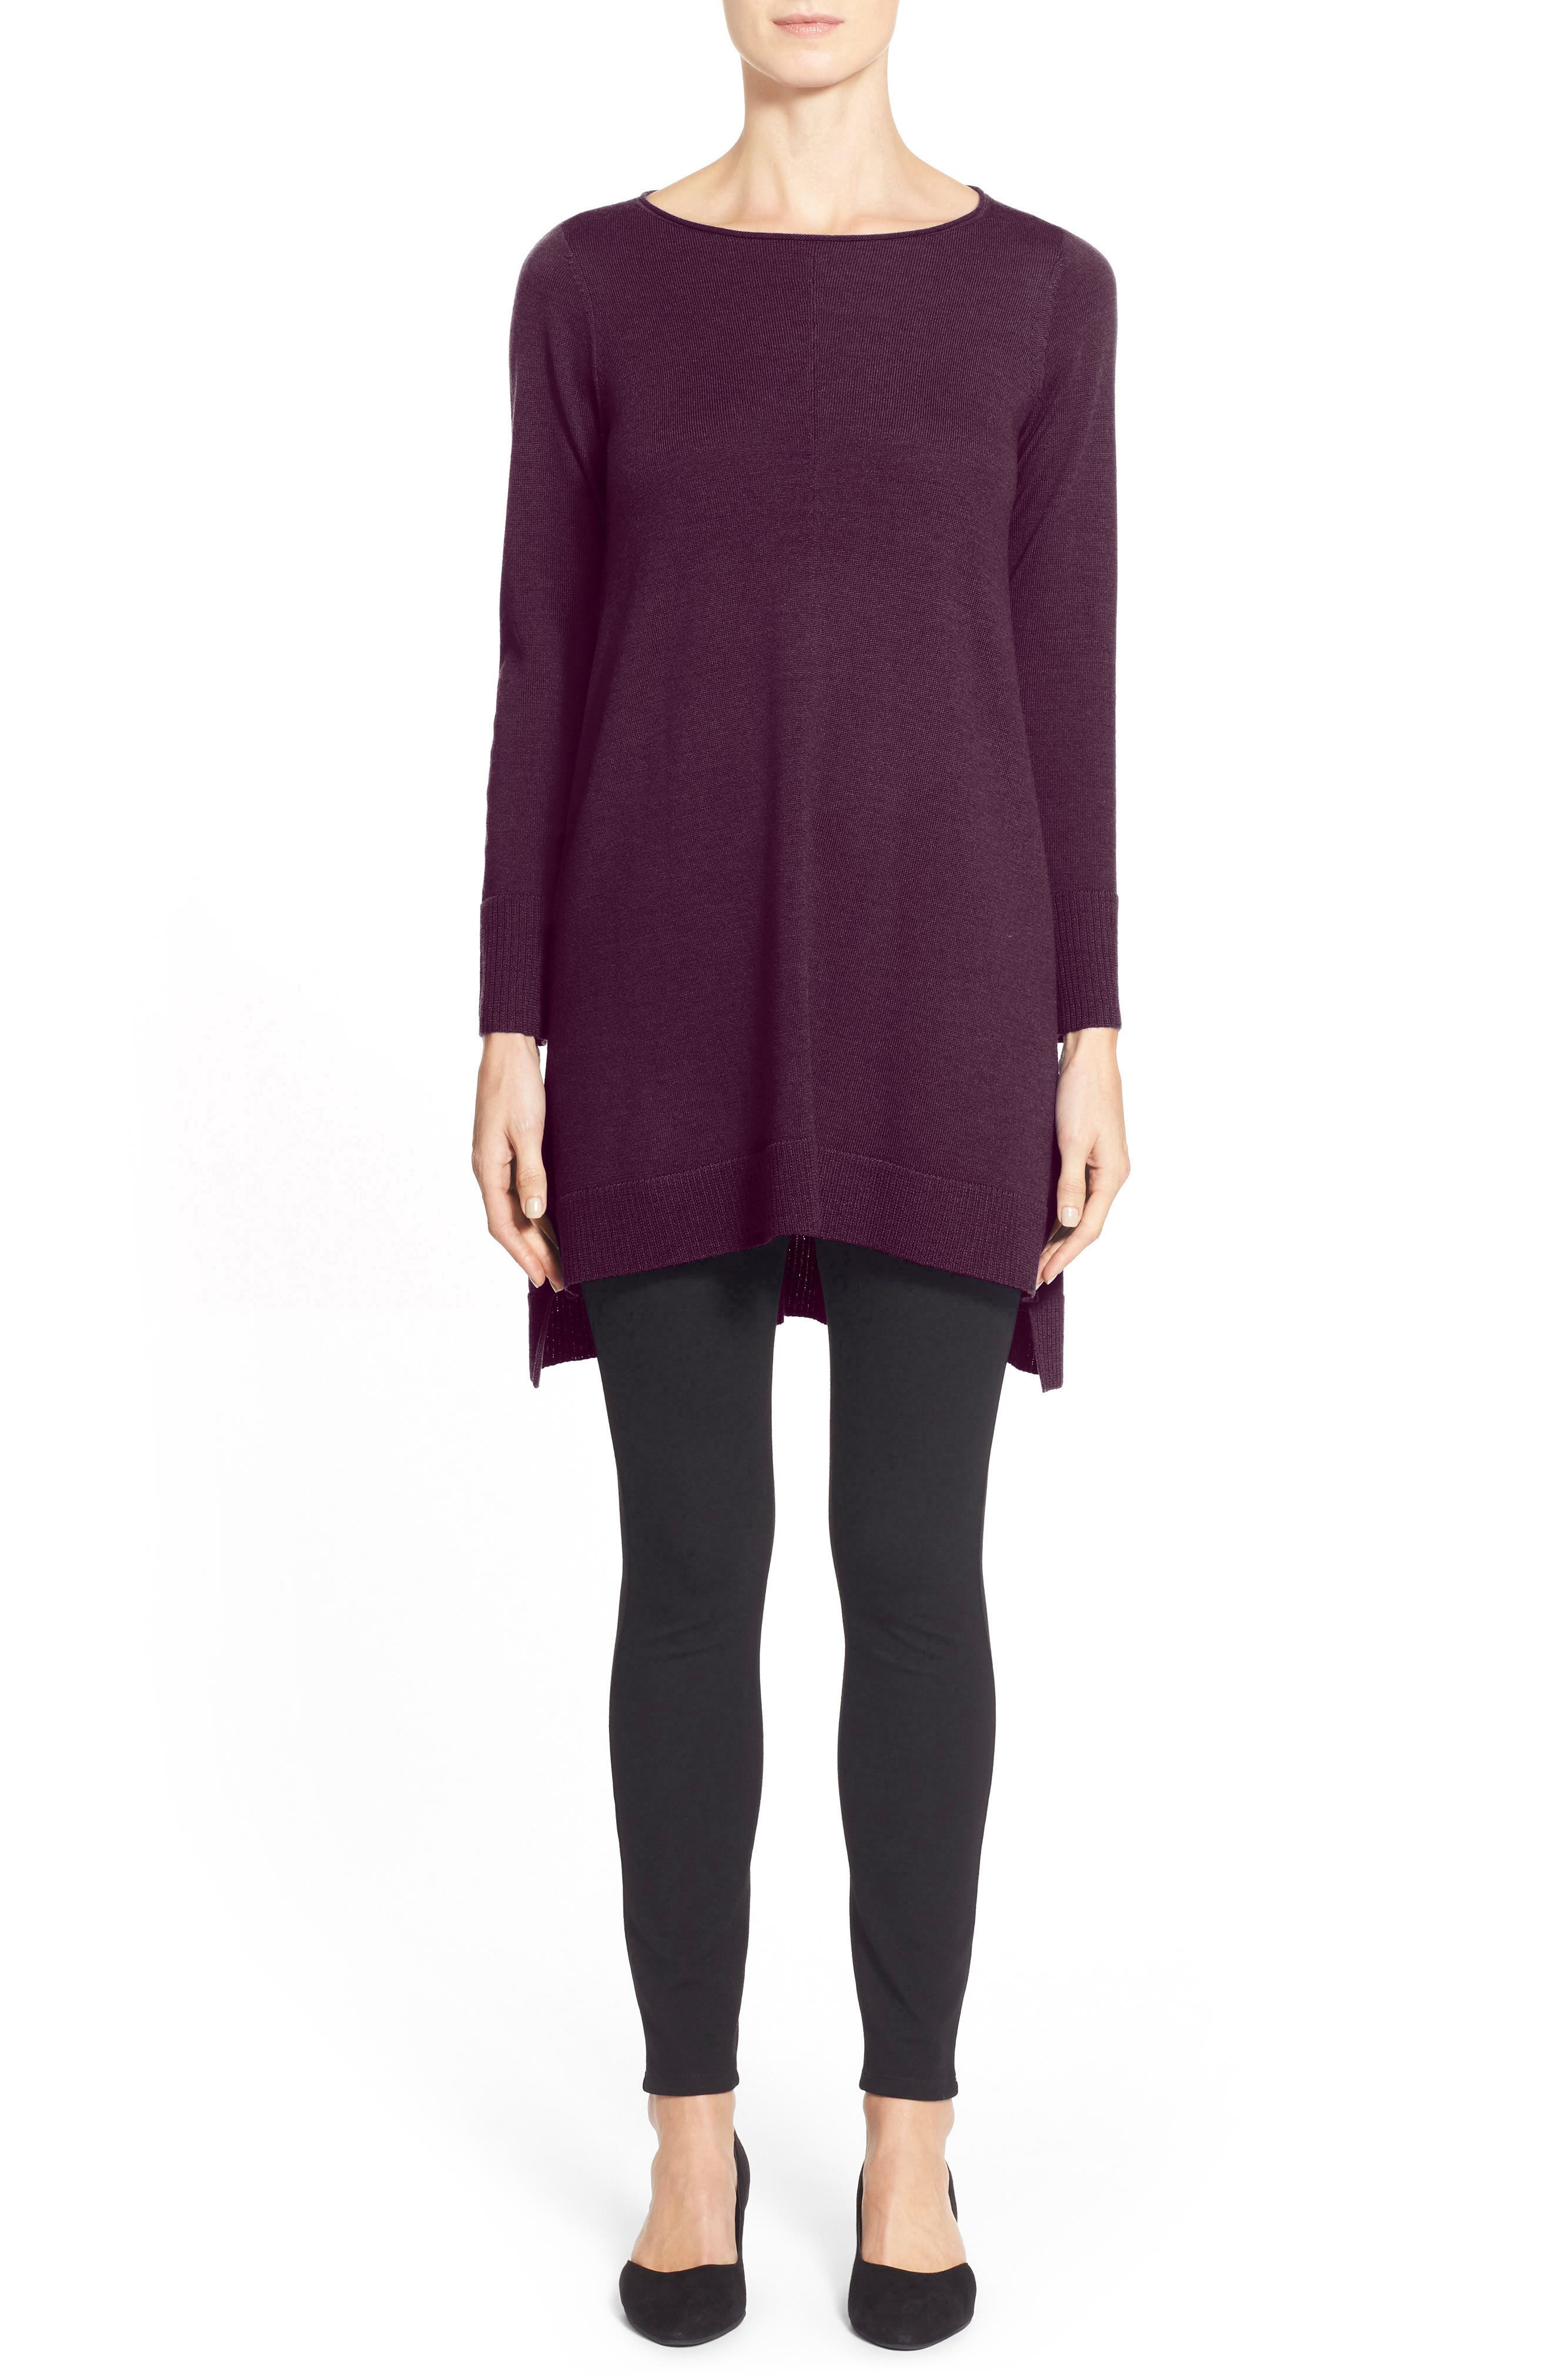 Alternate Image 1 Selected - Eileen Fisher Merino Jersey Tunic